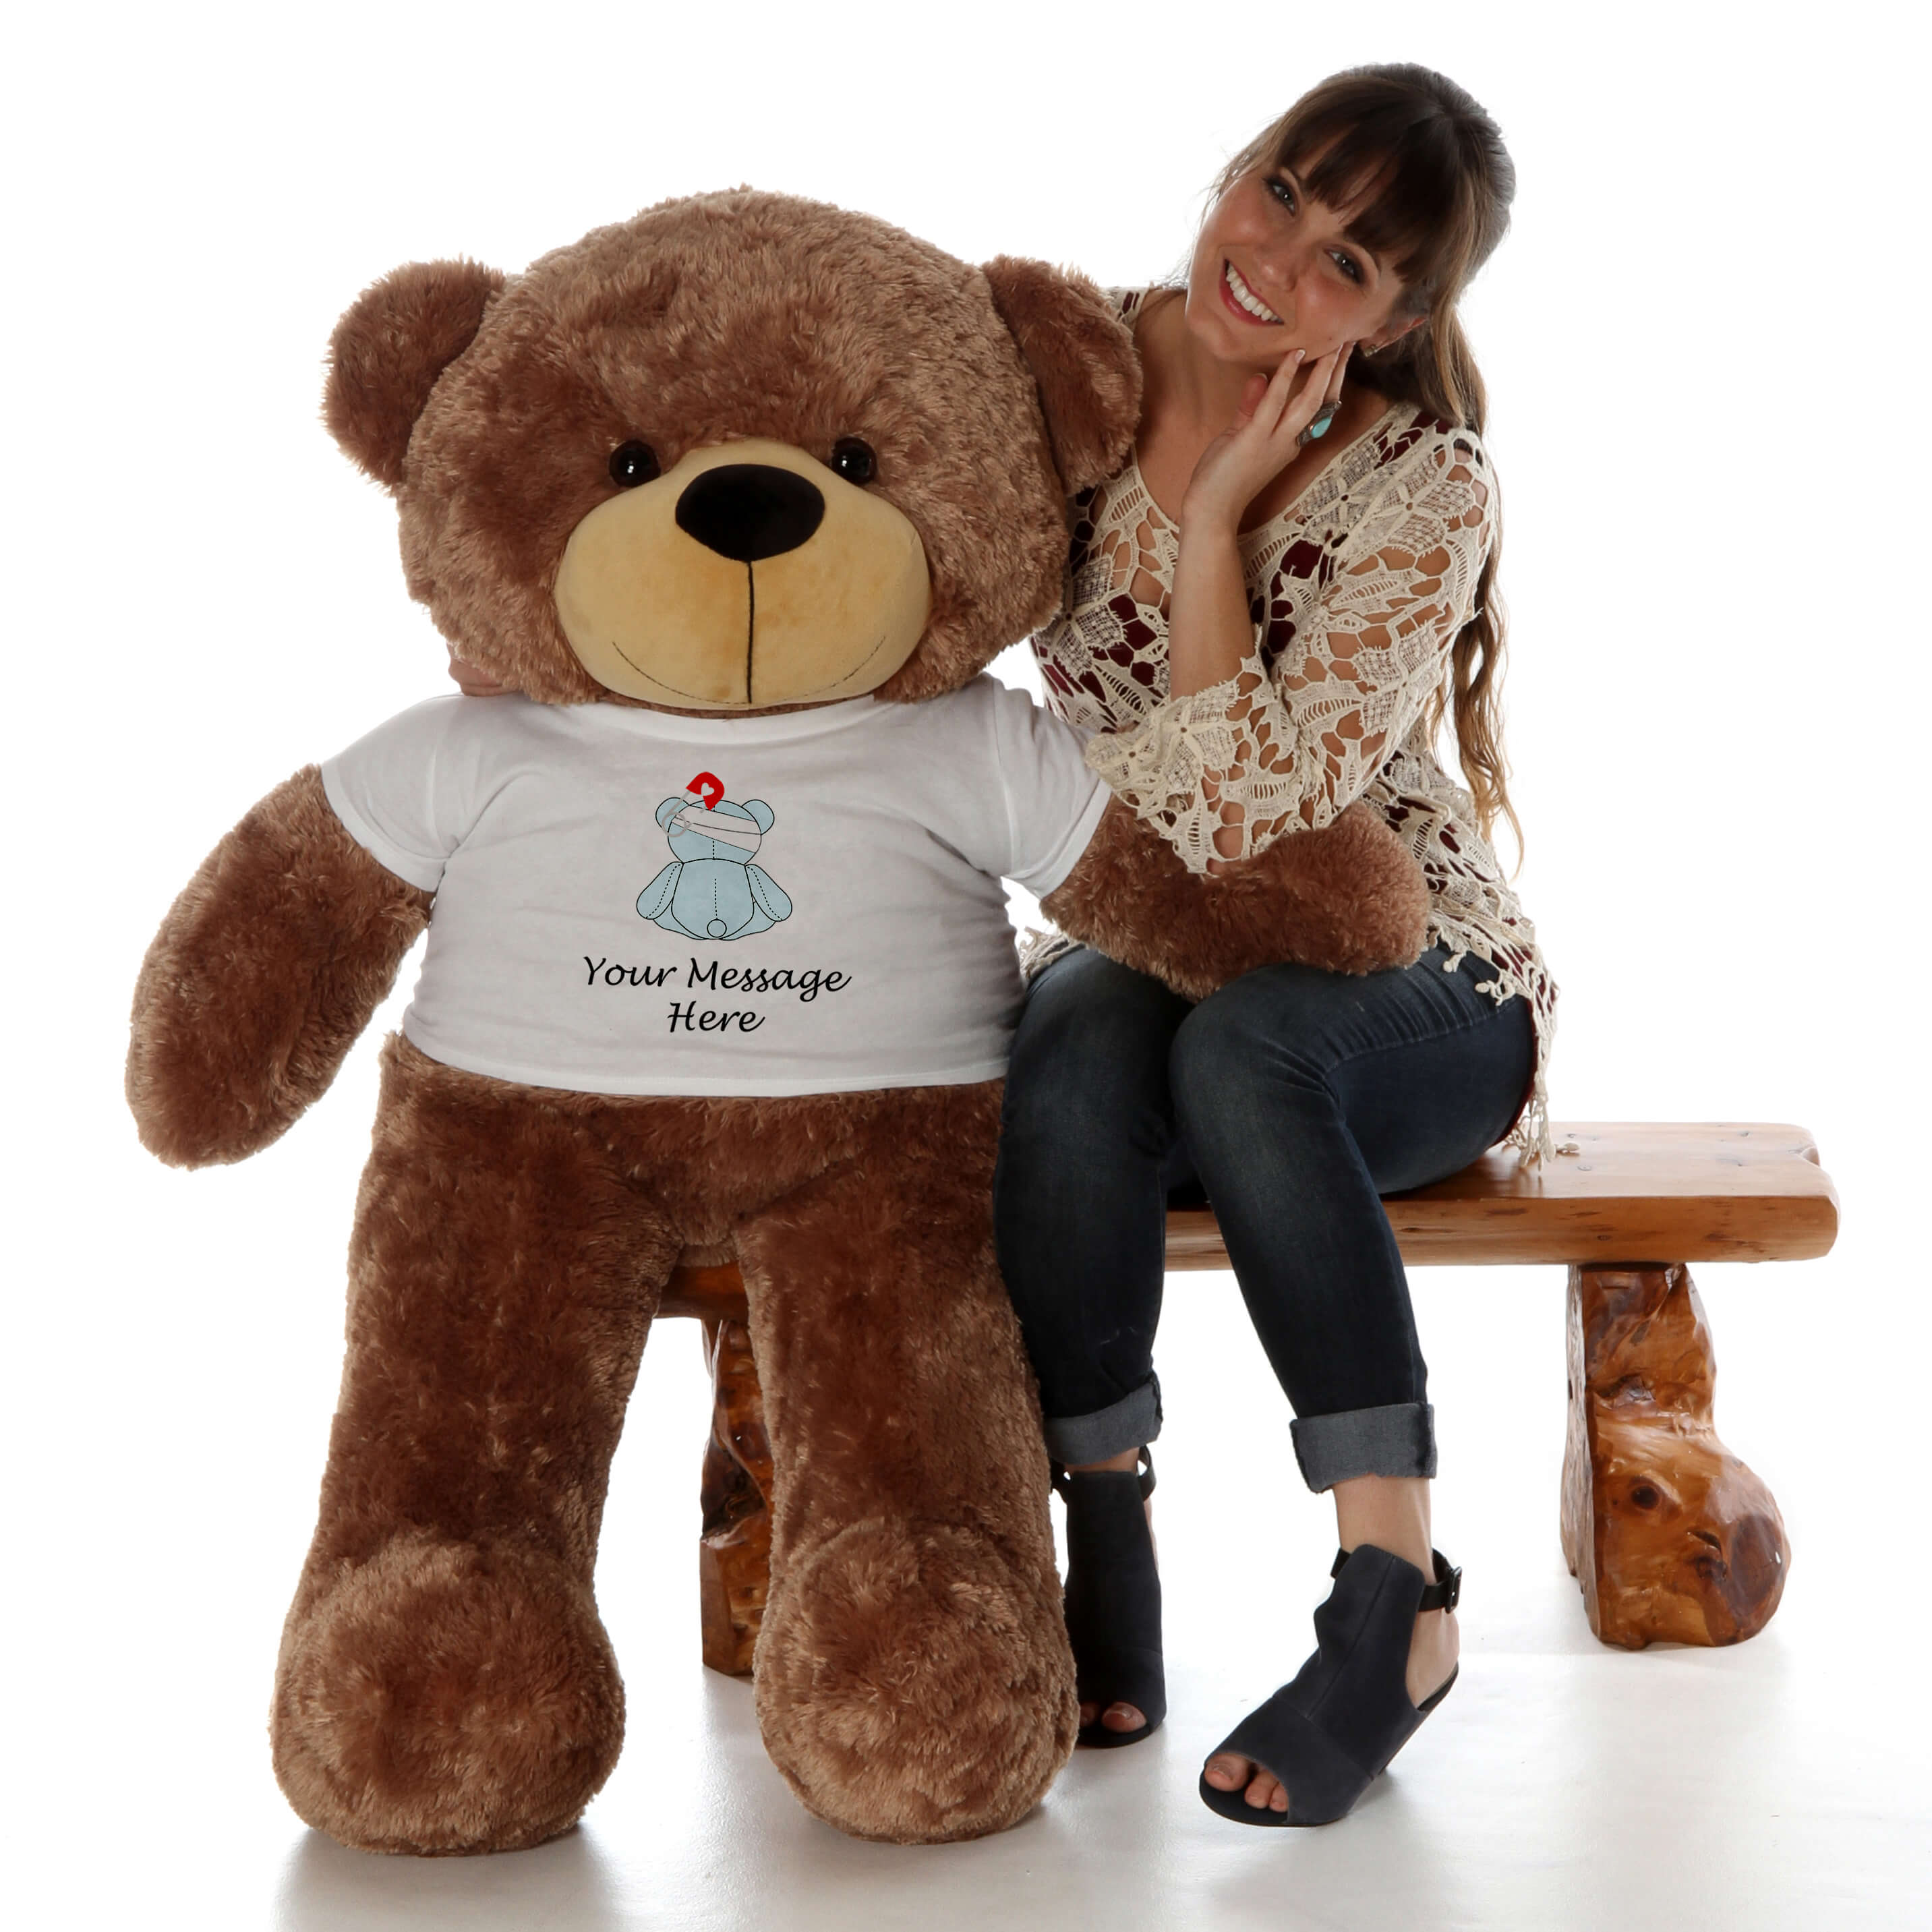 4ft-sunny-cuddles-mocha-brown-giant-teddy-bear-in-a-get-well-soon-your-message-here-t-shirt.jpg